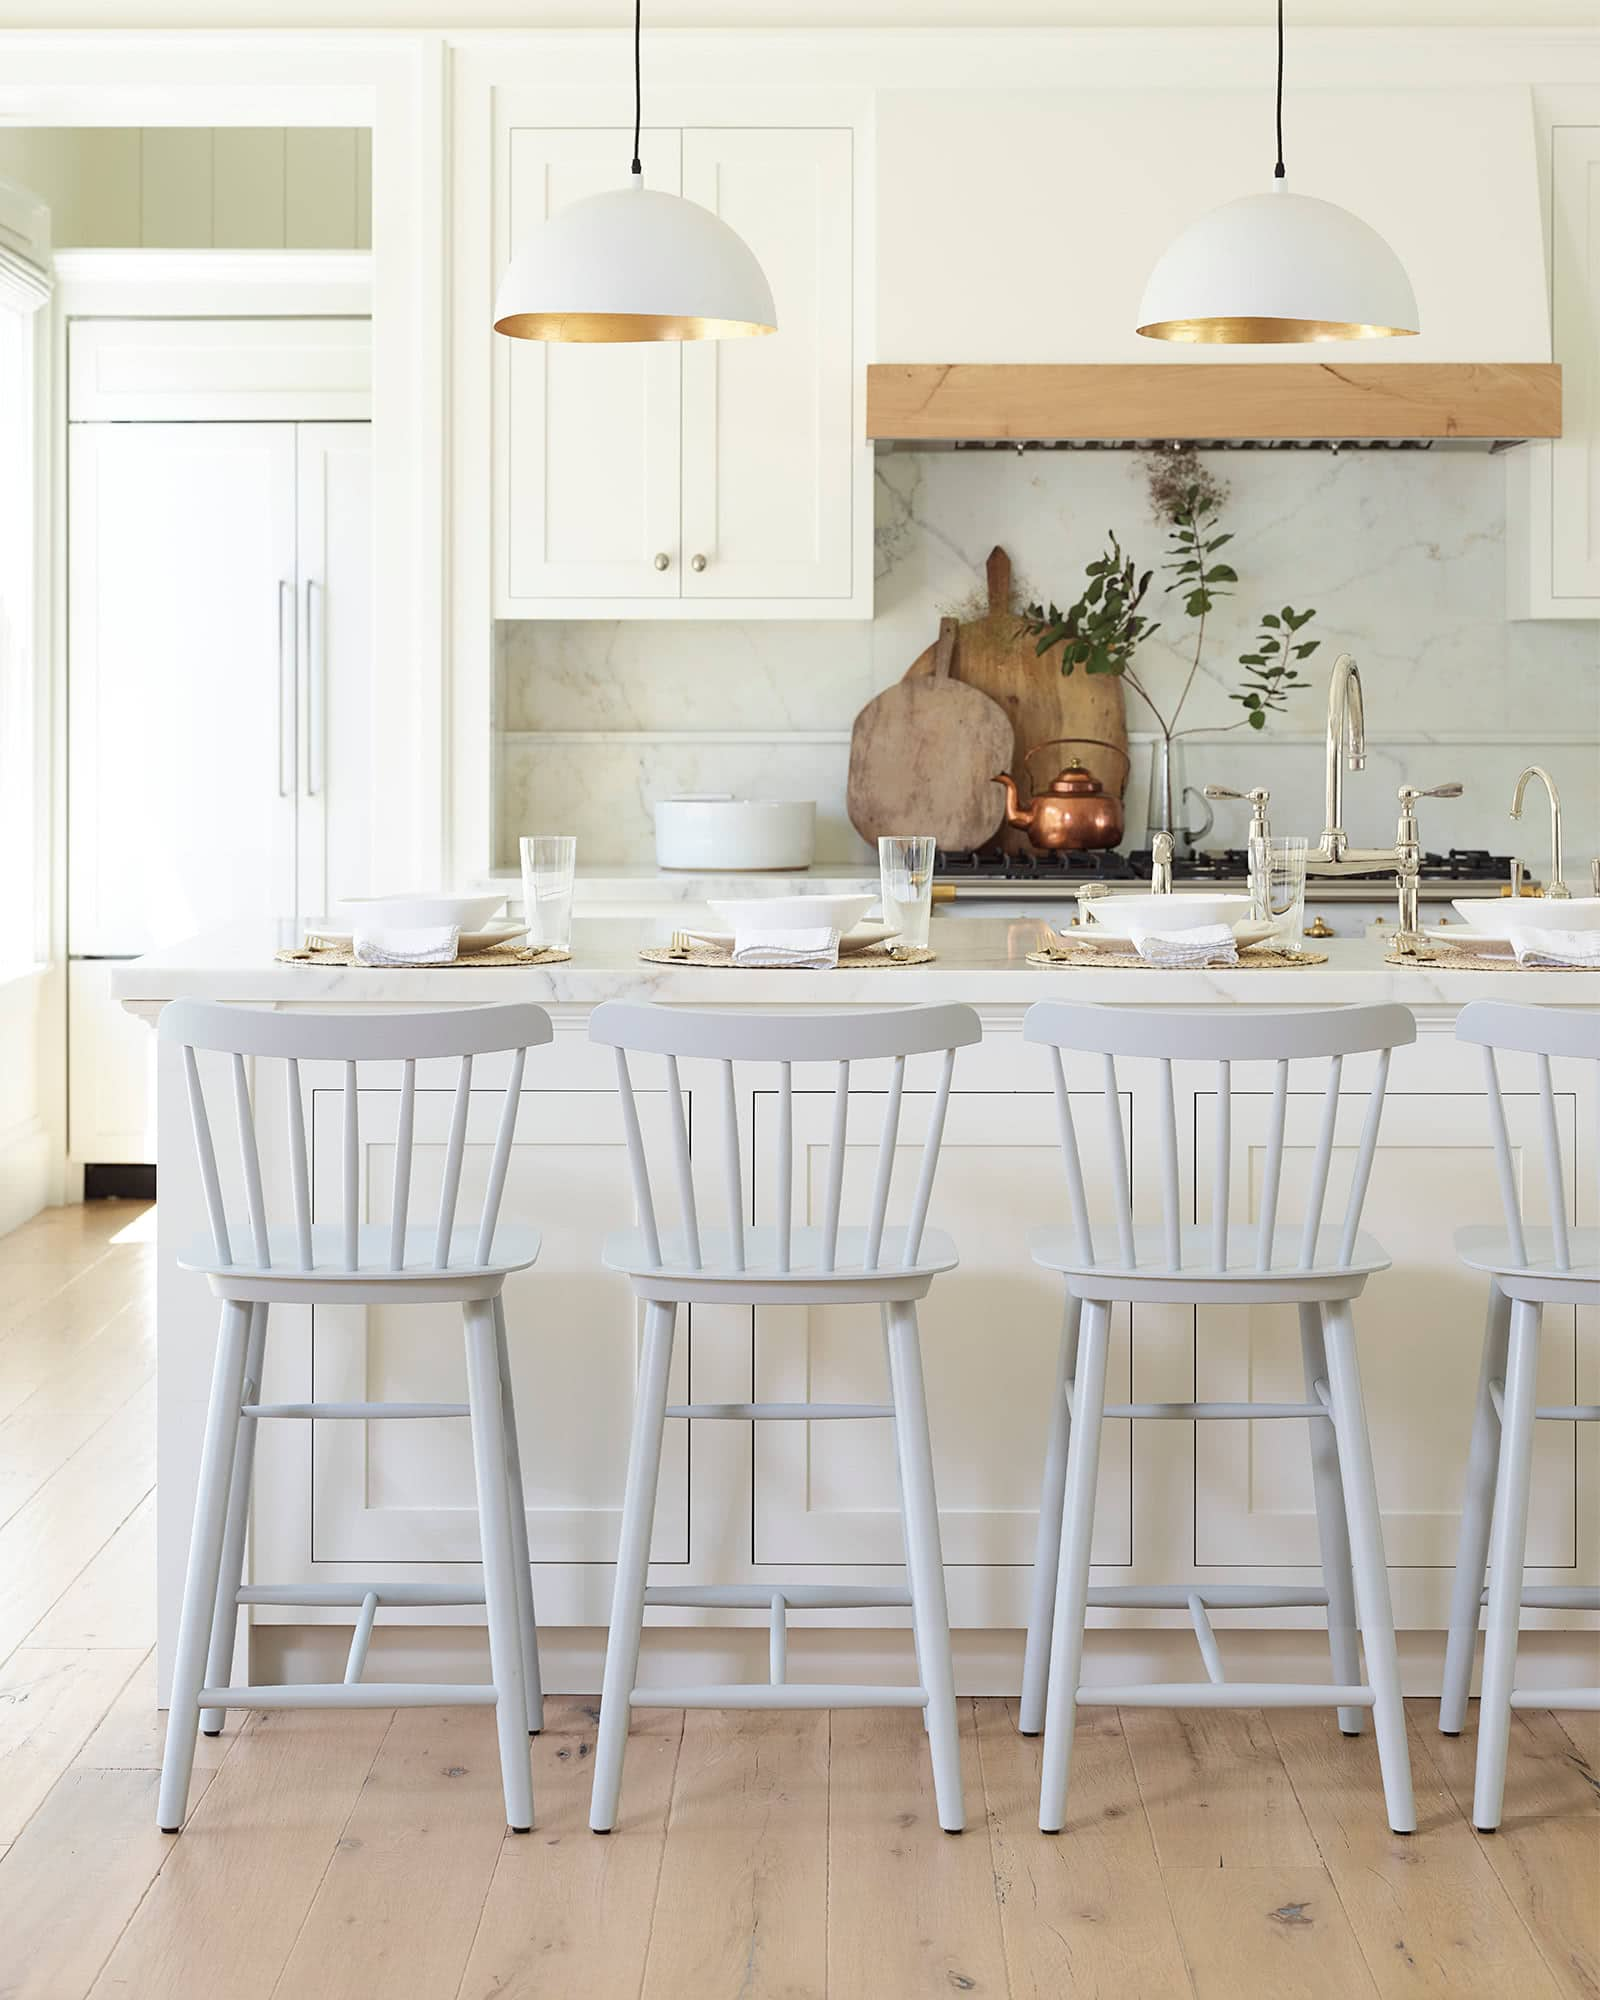 my favorite interior design style | coastal beachy style | serena and lily, fresh, seaside interiors, kitchen